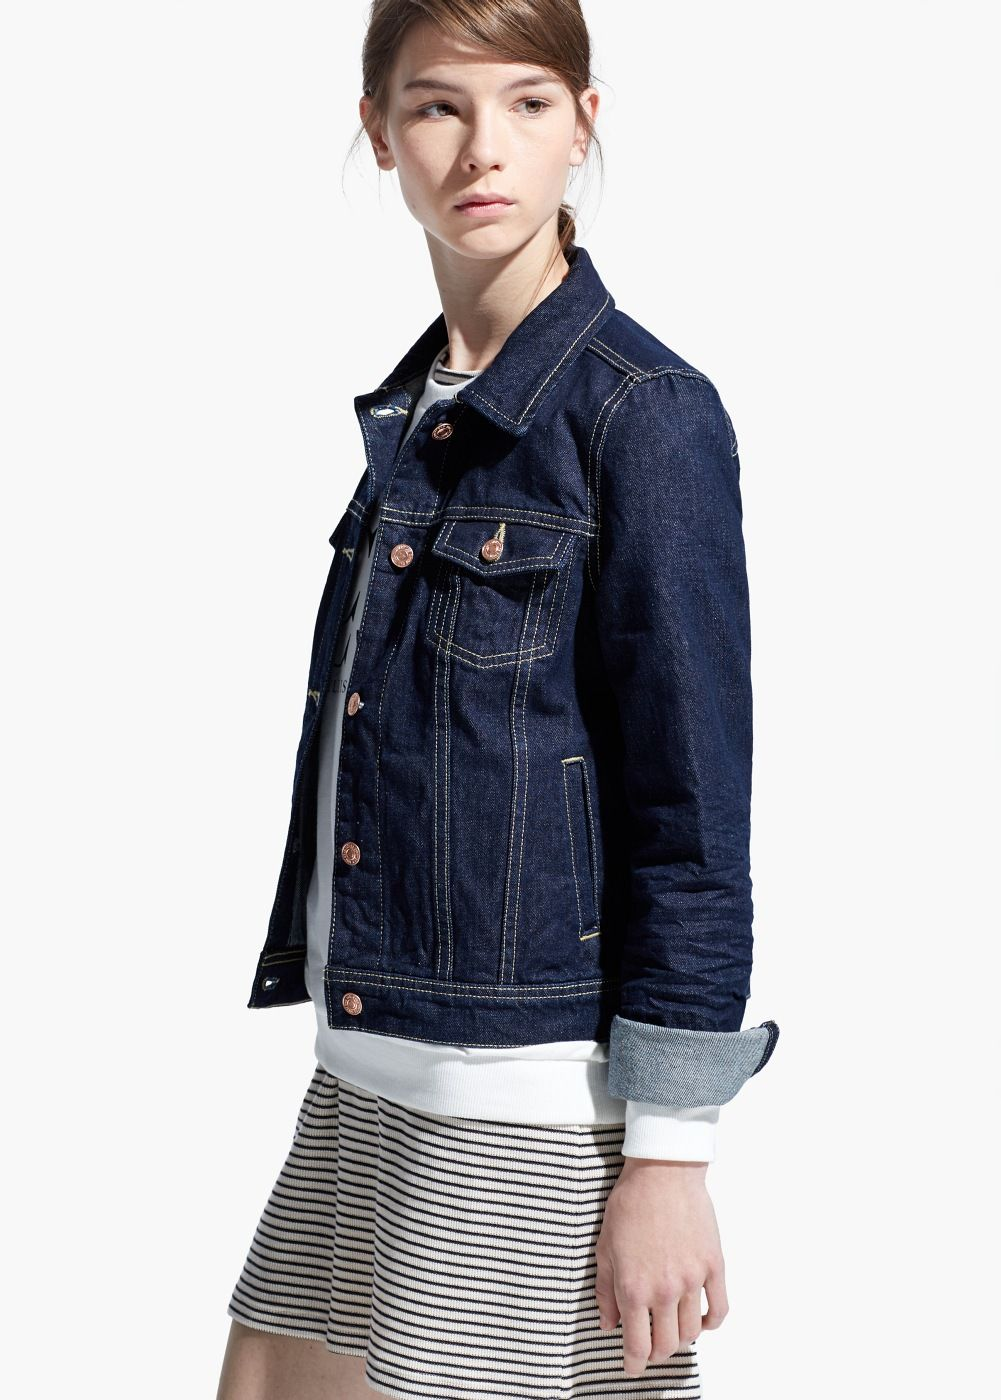 Dark denim jacket | Dark denim, Jackets and Denim jackets